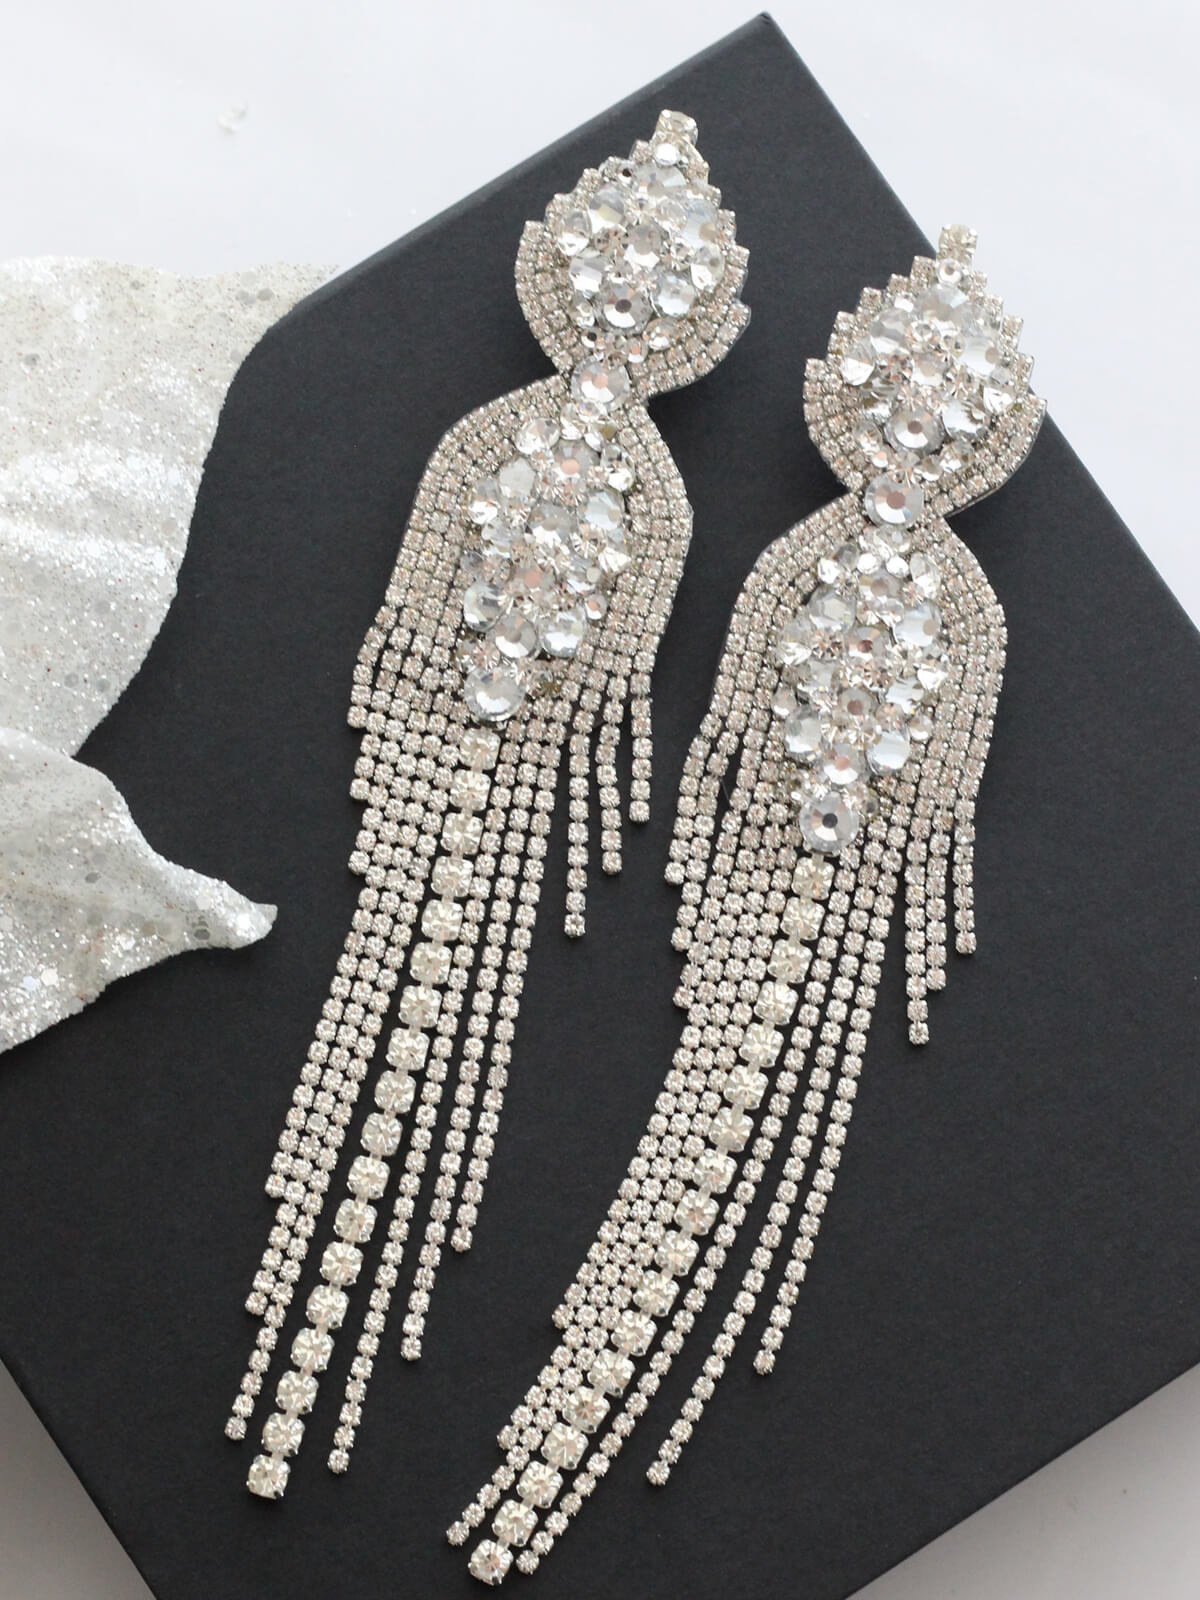 Earrings Coctail 324a